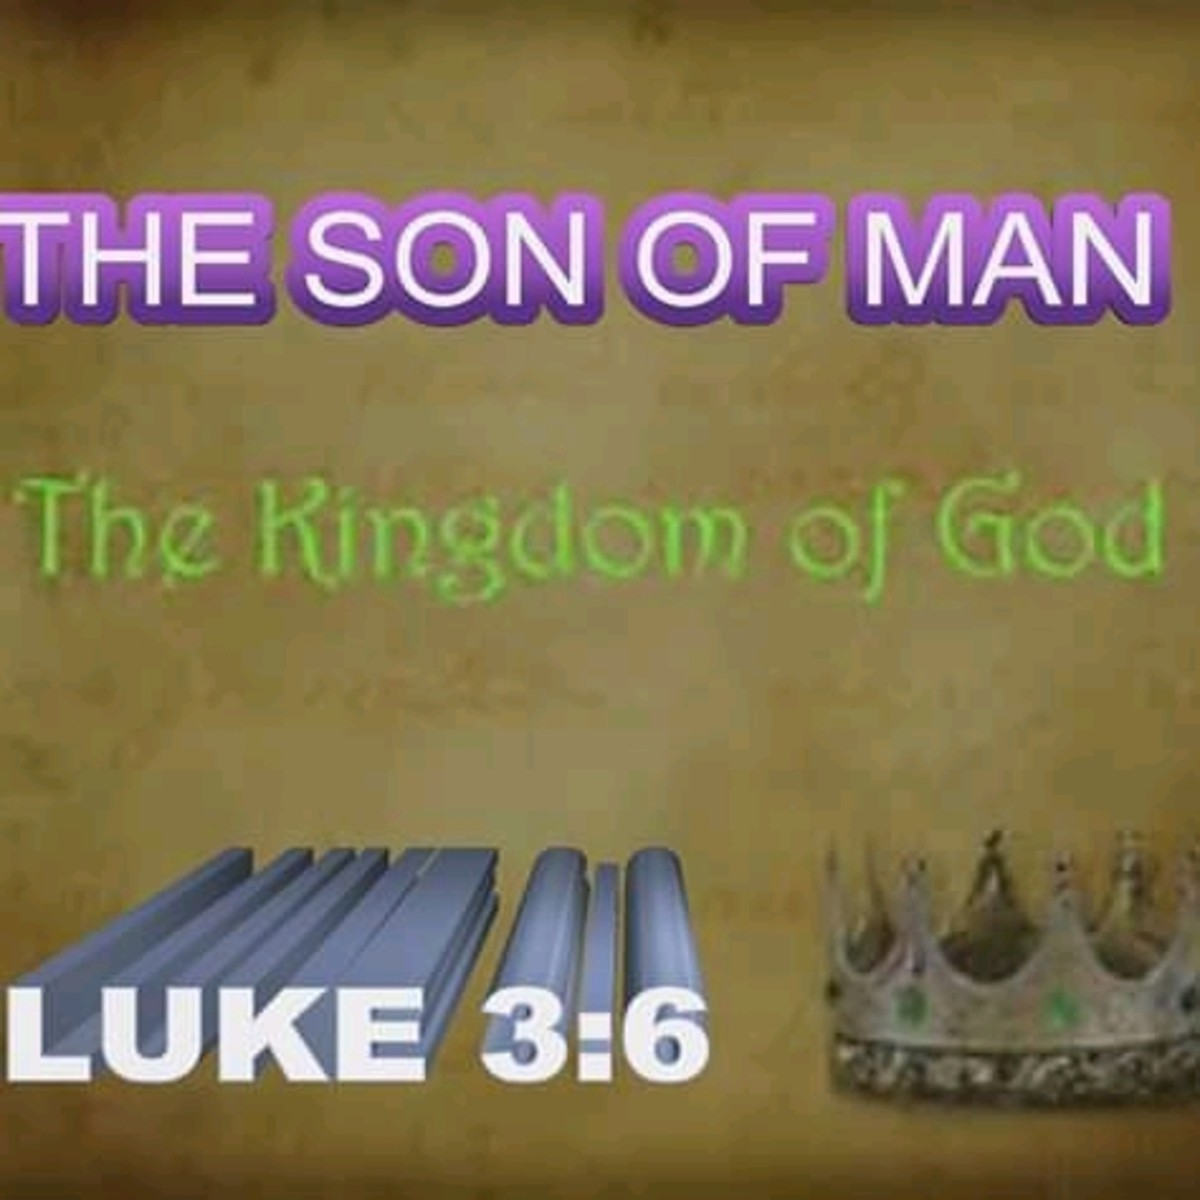 Jesus As The Son of Man